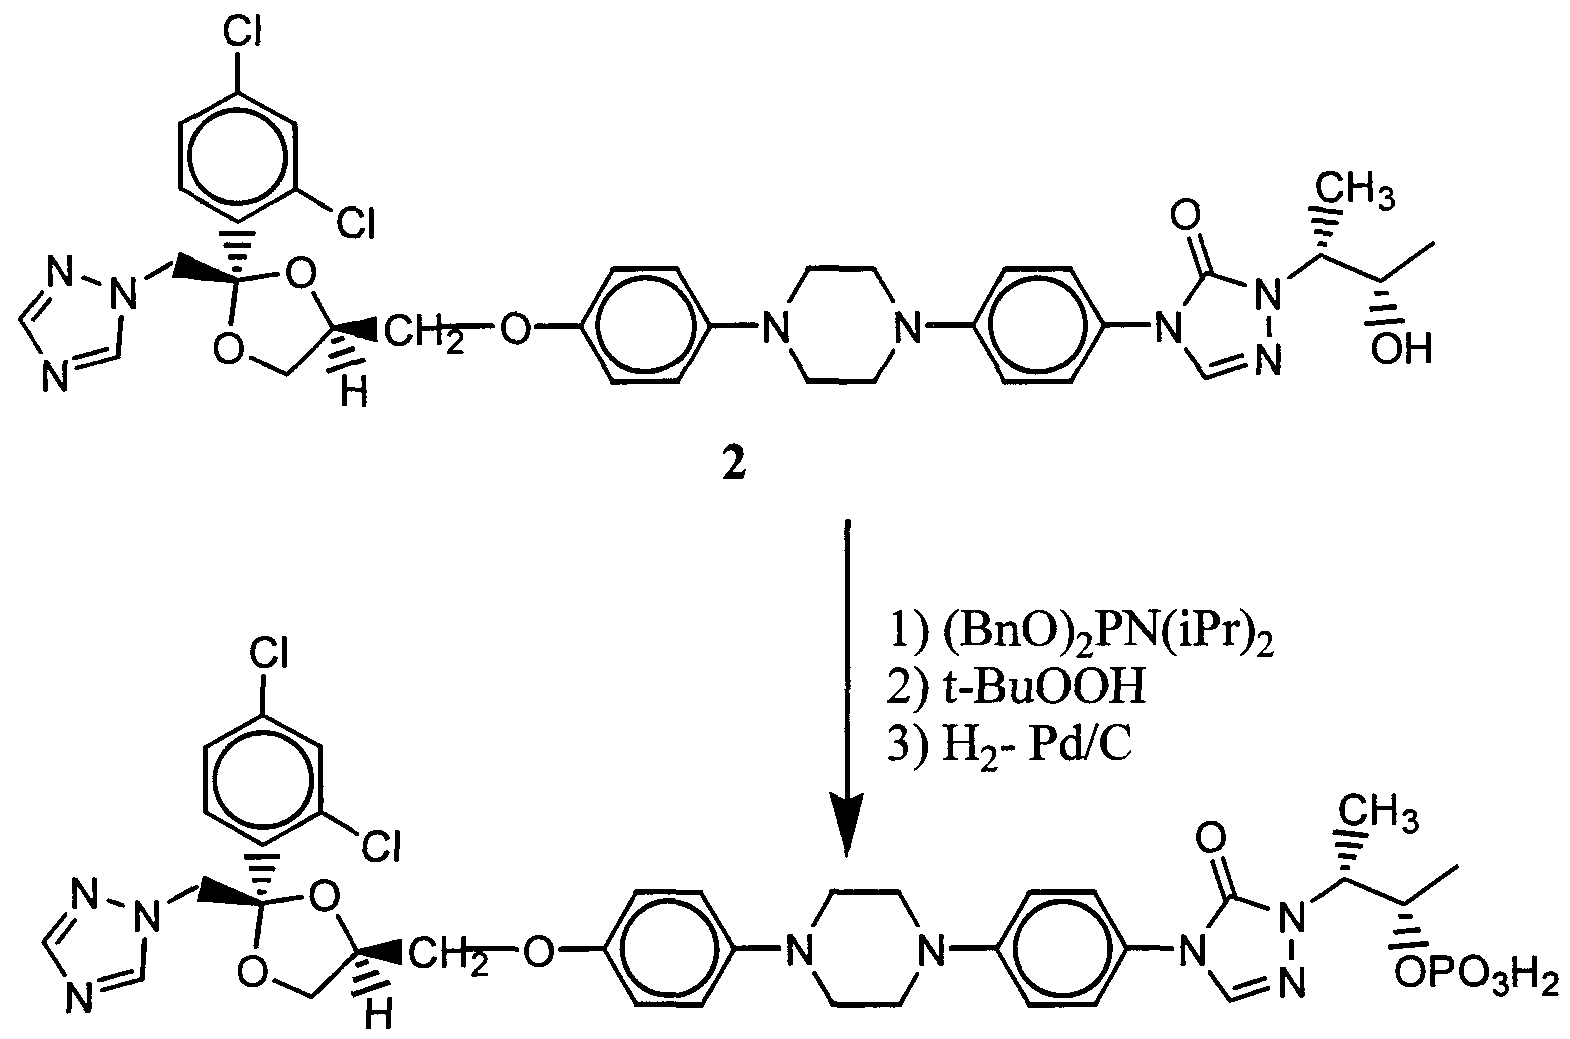 analysis of potassium cis diaquadioxalatochromate iii dihydrate synthesis Preparation and reactions of coordination compounds: oxalate complexes 2+ 3- 0 ii /c'c=o 0::-- 0 i c-0~1,, i ~p i ' o  :c-o i ~o or 0 ' 'c ,,c=o ii 0 hexaaquanickel(ii) trioxalatocobaltate(iii) 1- 1- o~ oh2 -90 c-0 i 0-c i 1111 '' r ''' ' i c-o i ~o-c 0-9 oh2 o cis-diaquadioxalatochromate(iii.